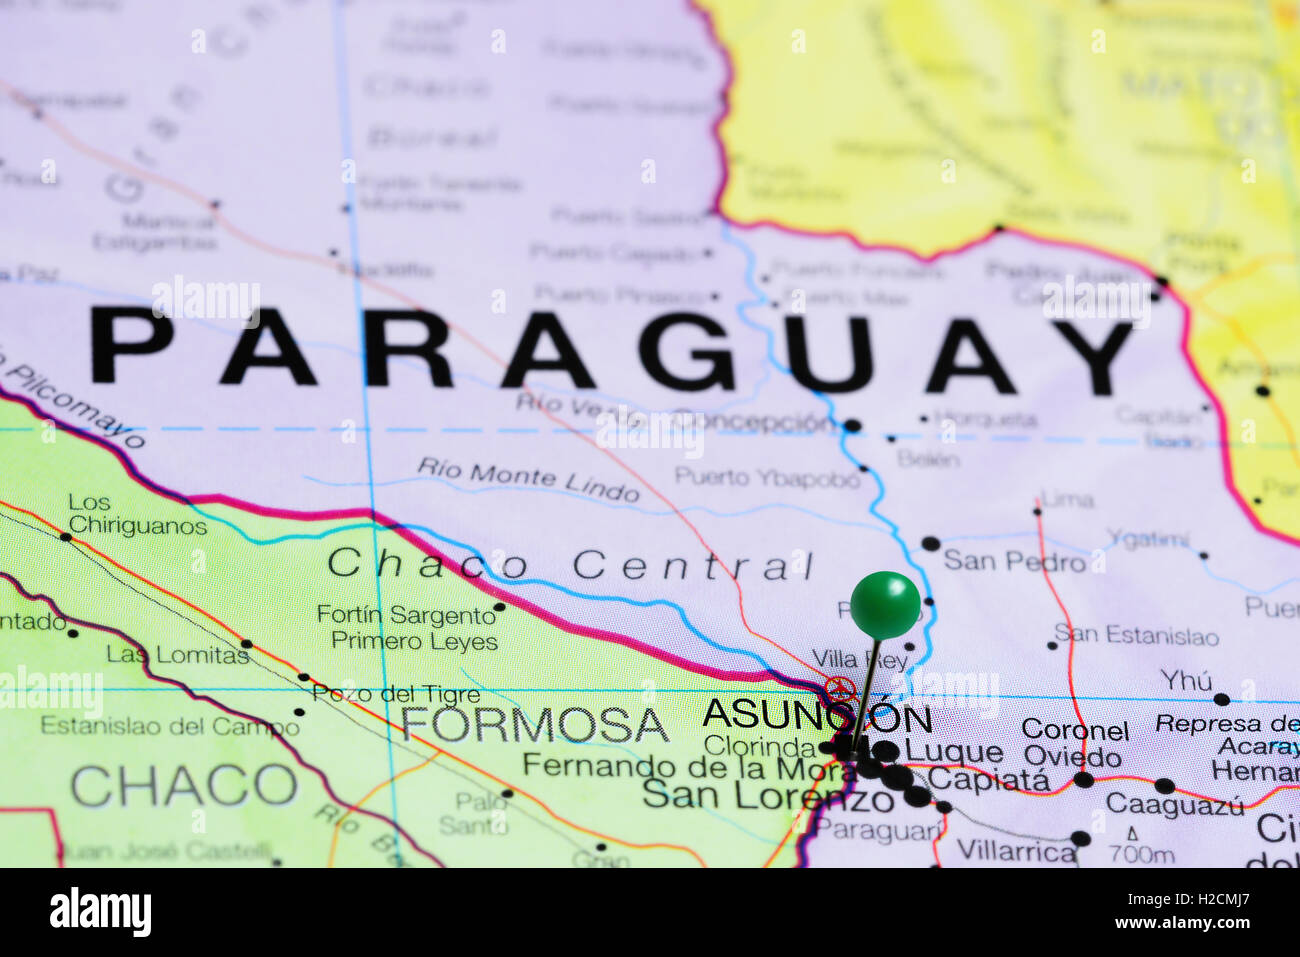 Asuncion pinned on a map of Paraguay Stock Photo: 121981503 - Alamy